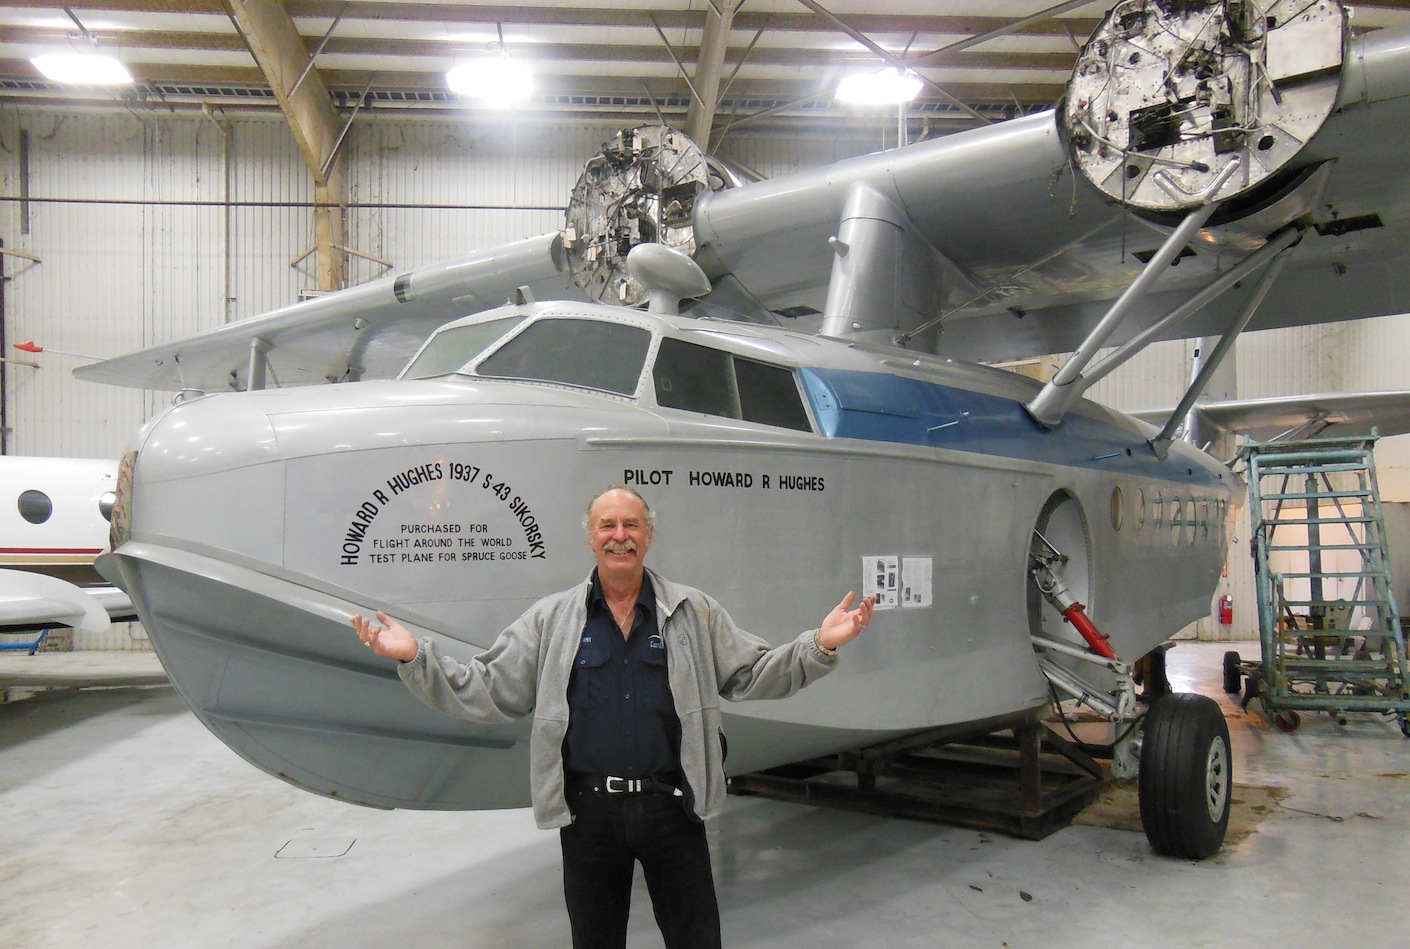 Tow Truck Houston >> How I acquired the Howard Hughes Sikorsky S-43! | Fantasy ...